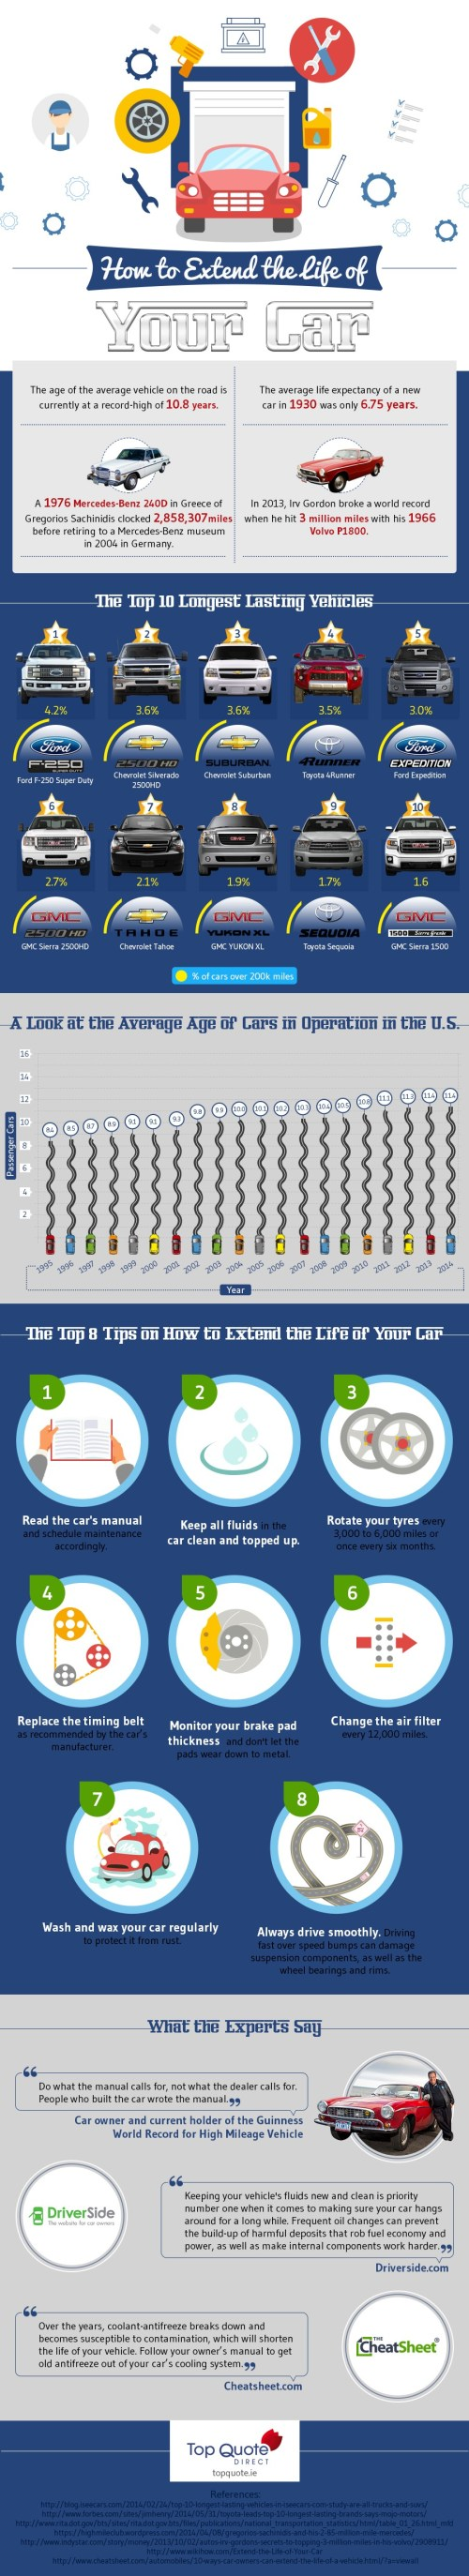 How-to-extend-life-of-your-car-Infographic